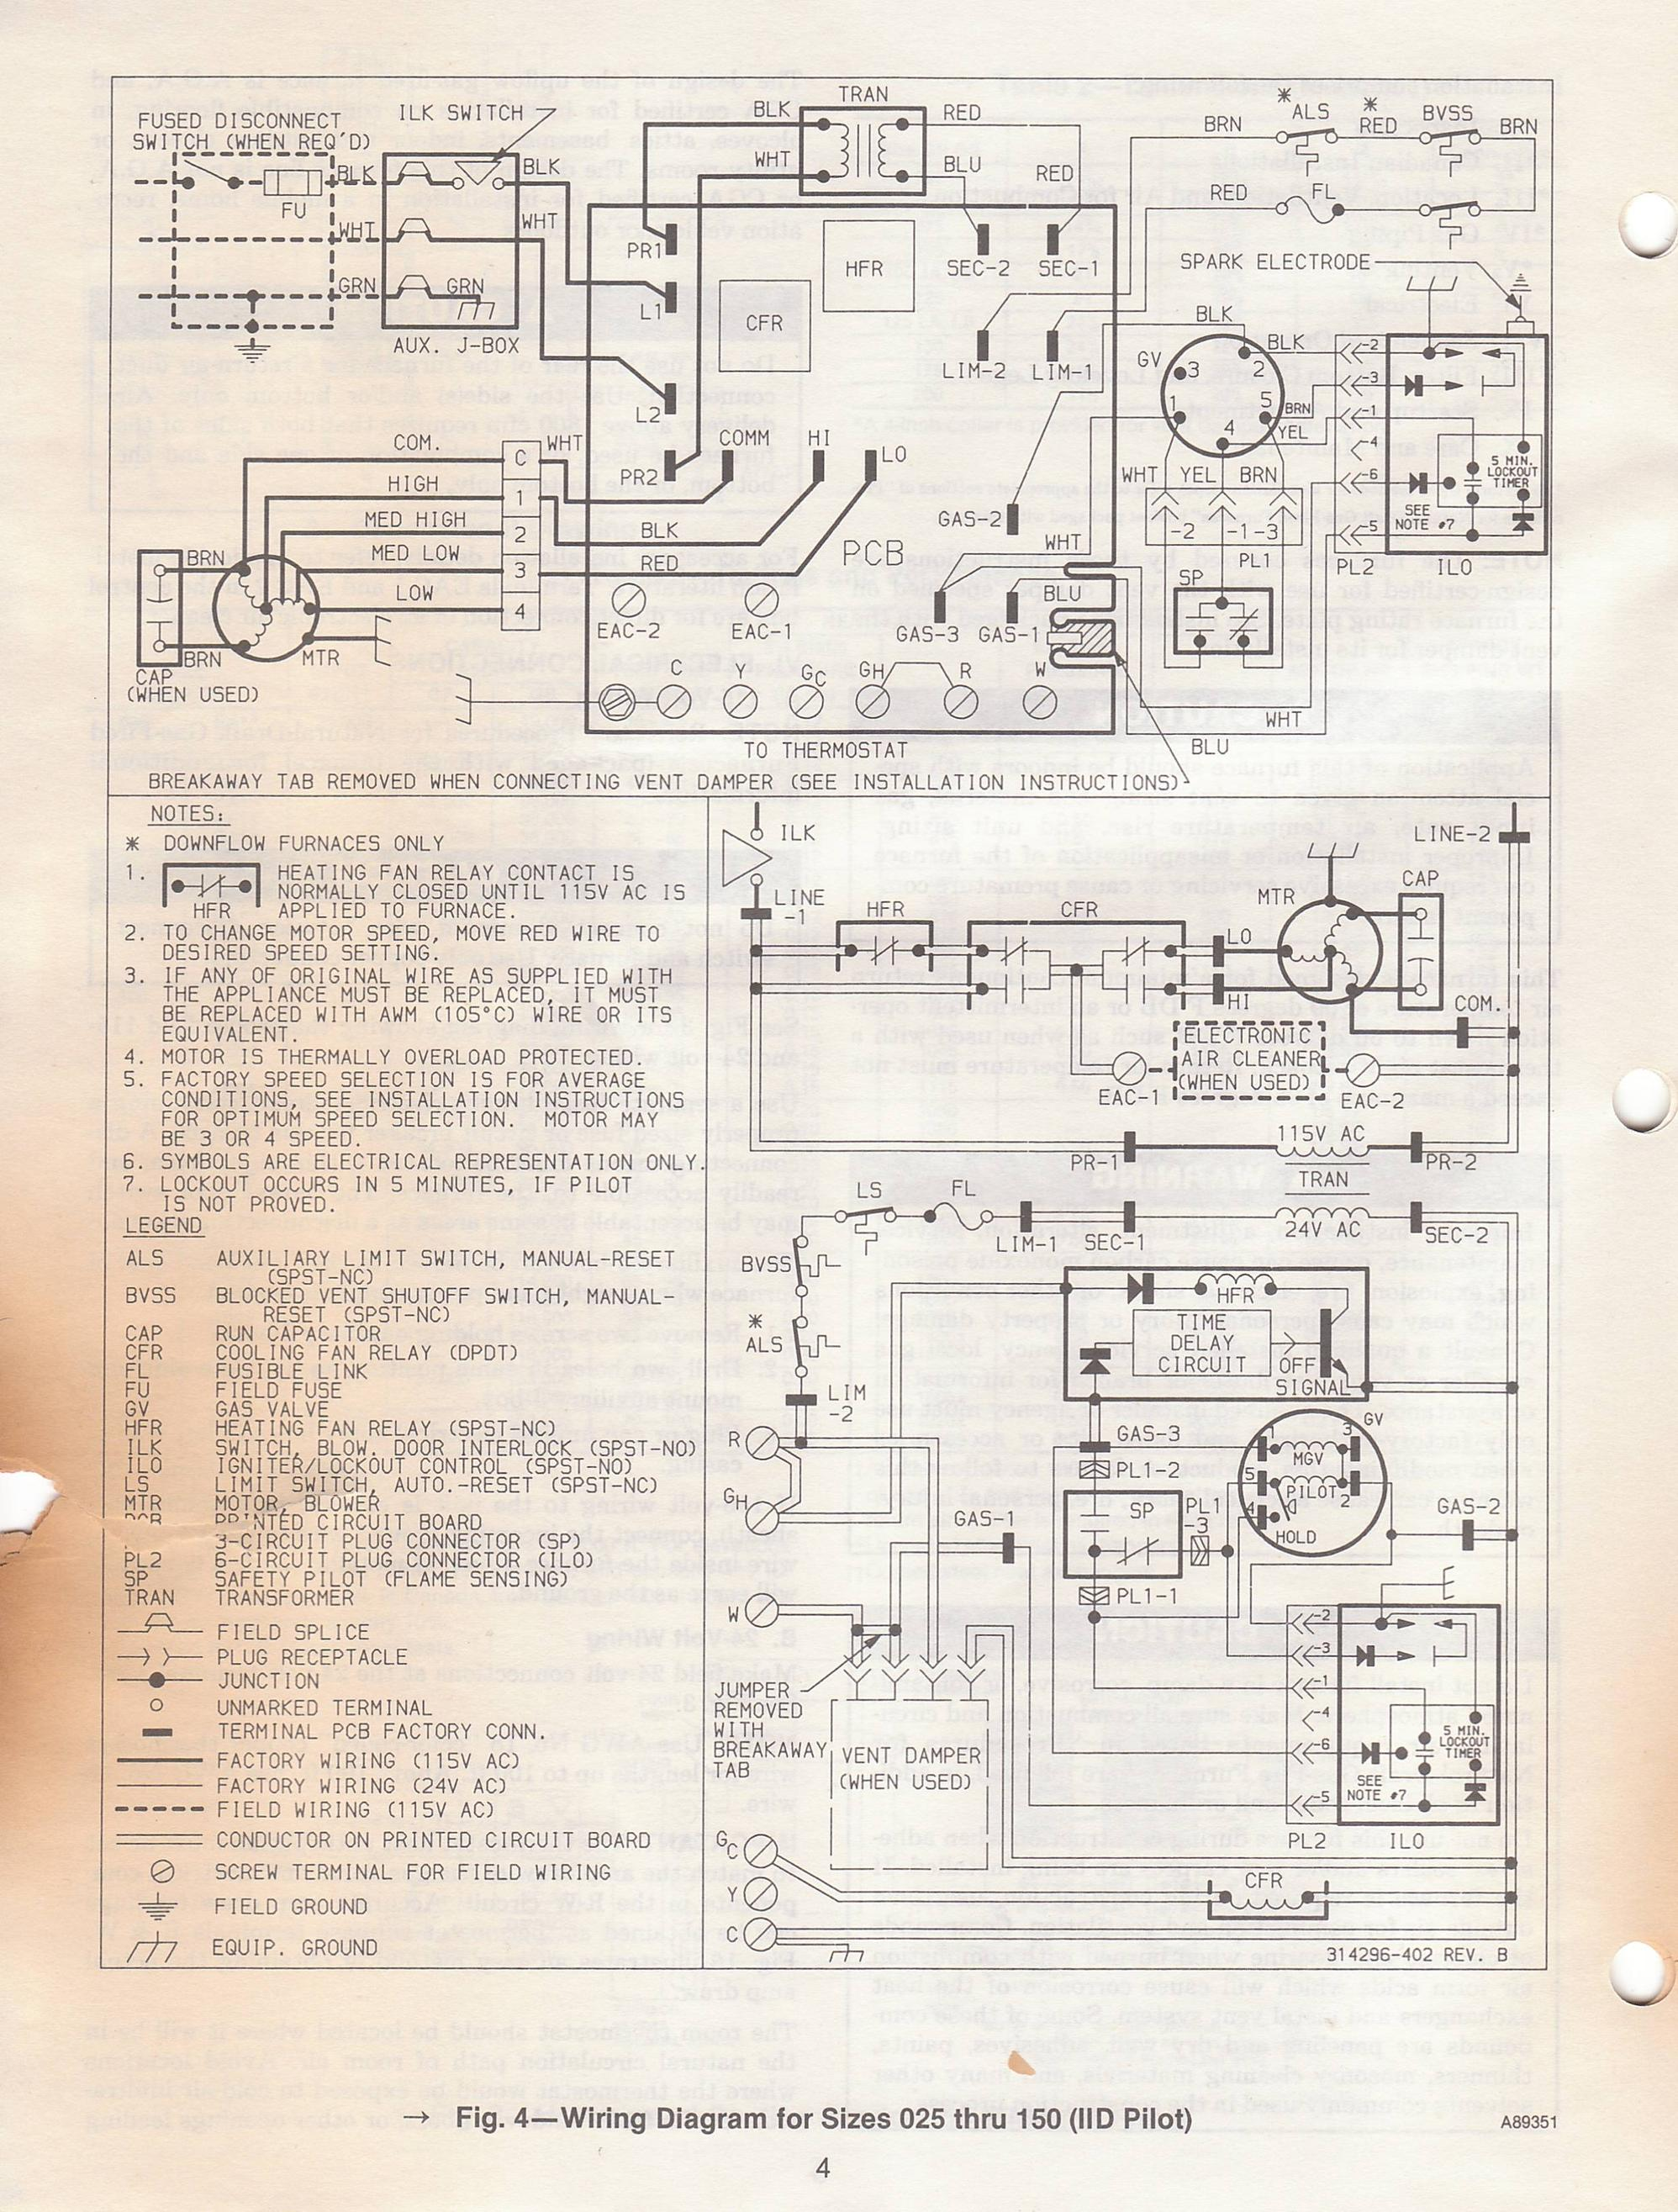 Electric Furnace Parts Diagram On Evcon Gas Furnace Wiring Diagrams